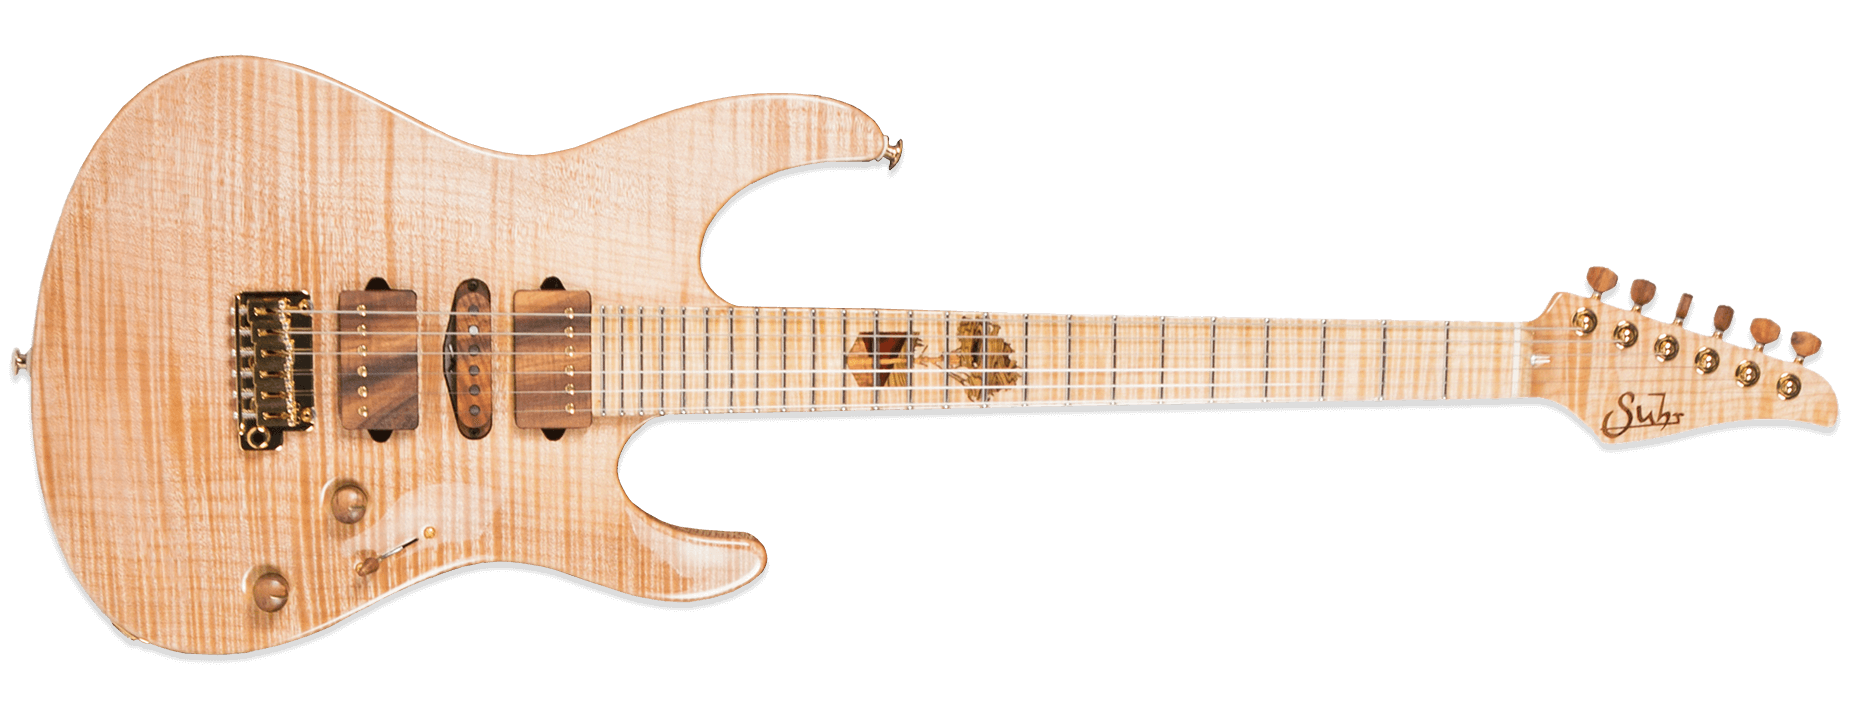 Suhr Trilogy Collection 2016 No.2